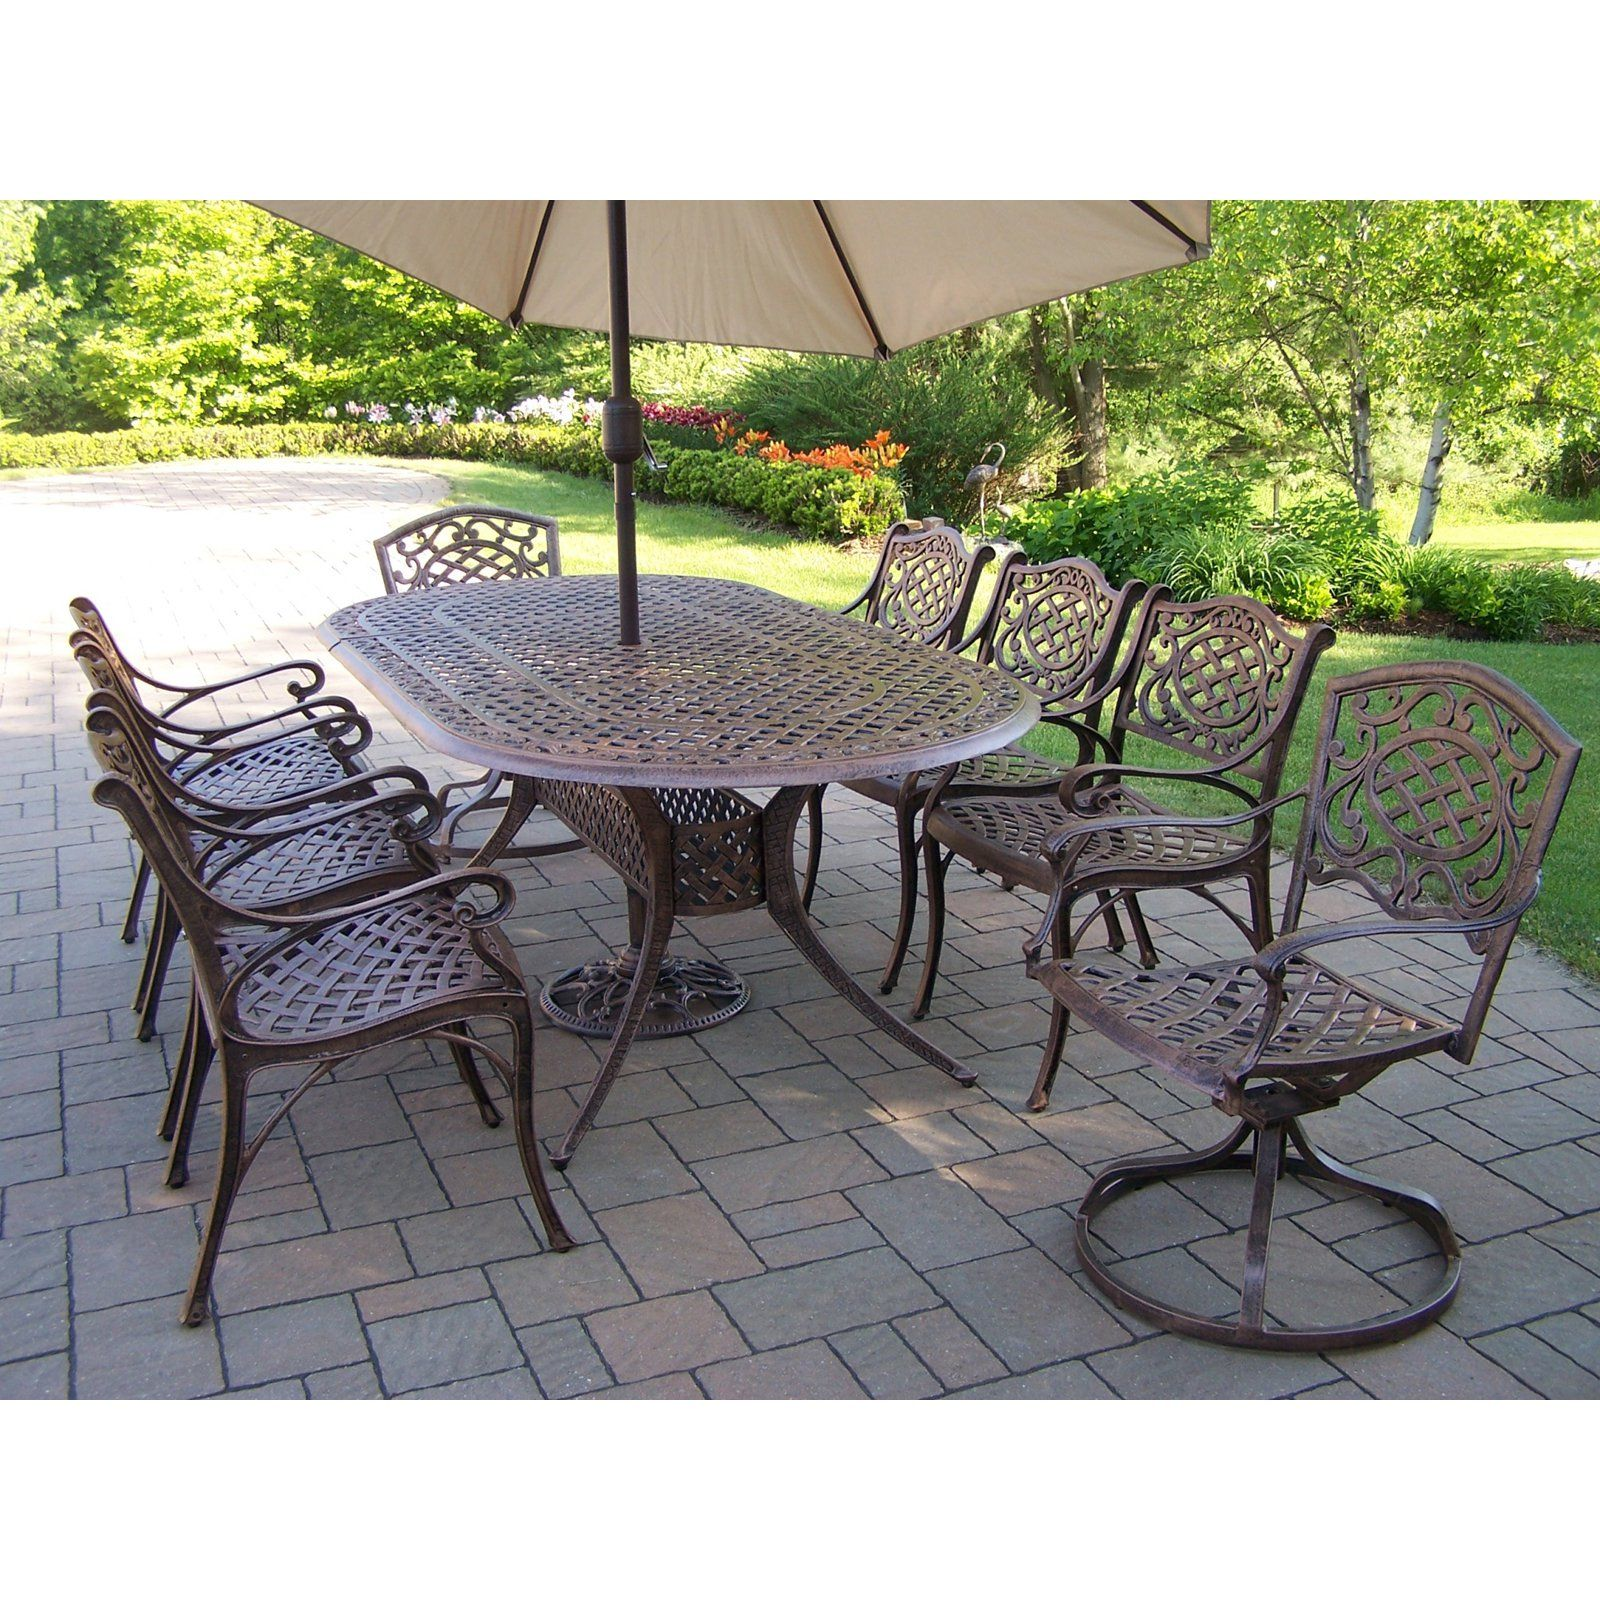 Outdoor Oakland Living Mississippi Aluminum 82 X 42 In Oval Patio